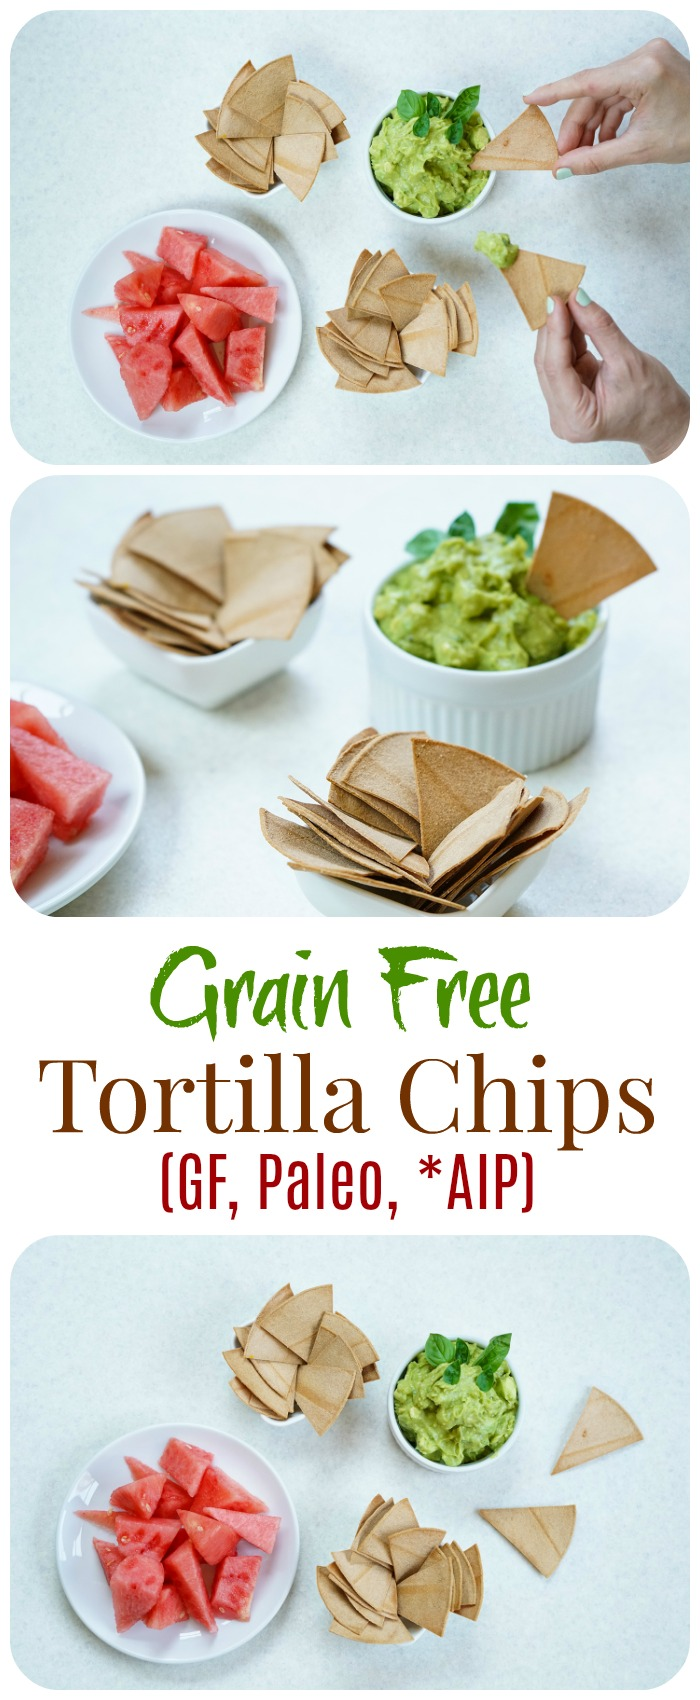 Easy Grain Free Tortilla Chips (GF, Paleo, AIP)